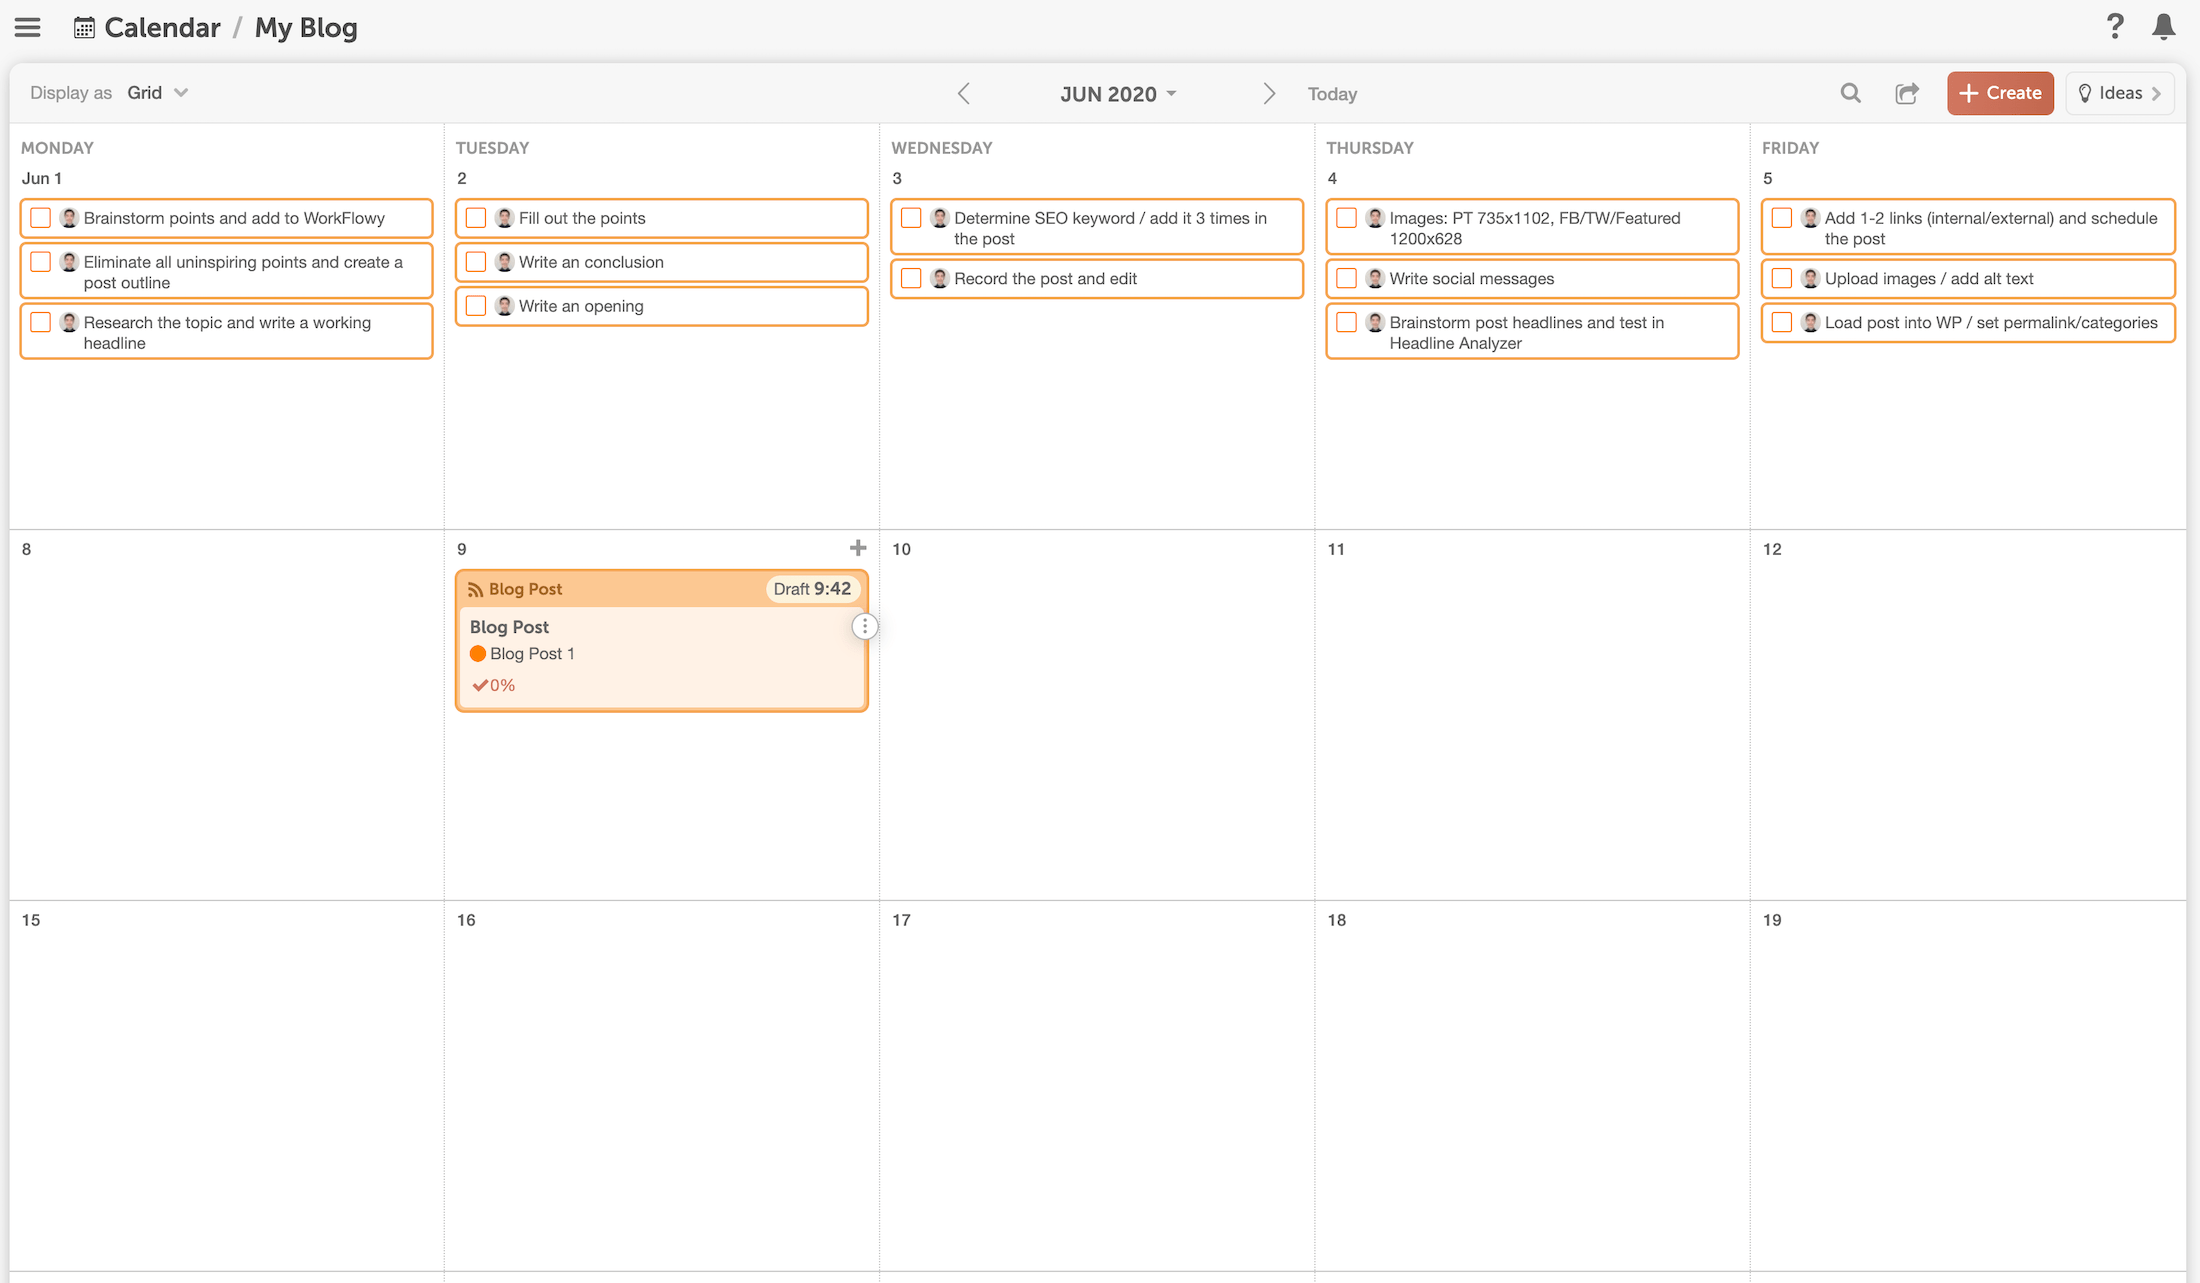 CoSchedule Marketing Calendar Plan Blog Post - MindfulSpot.com